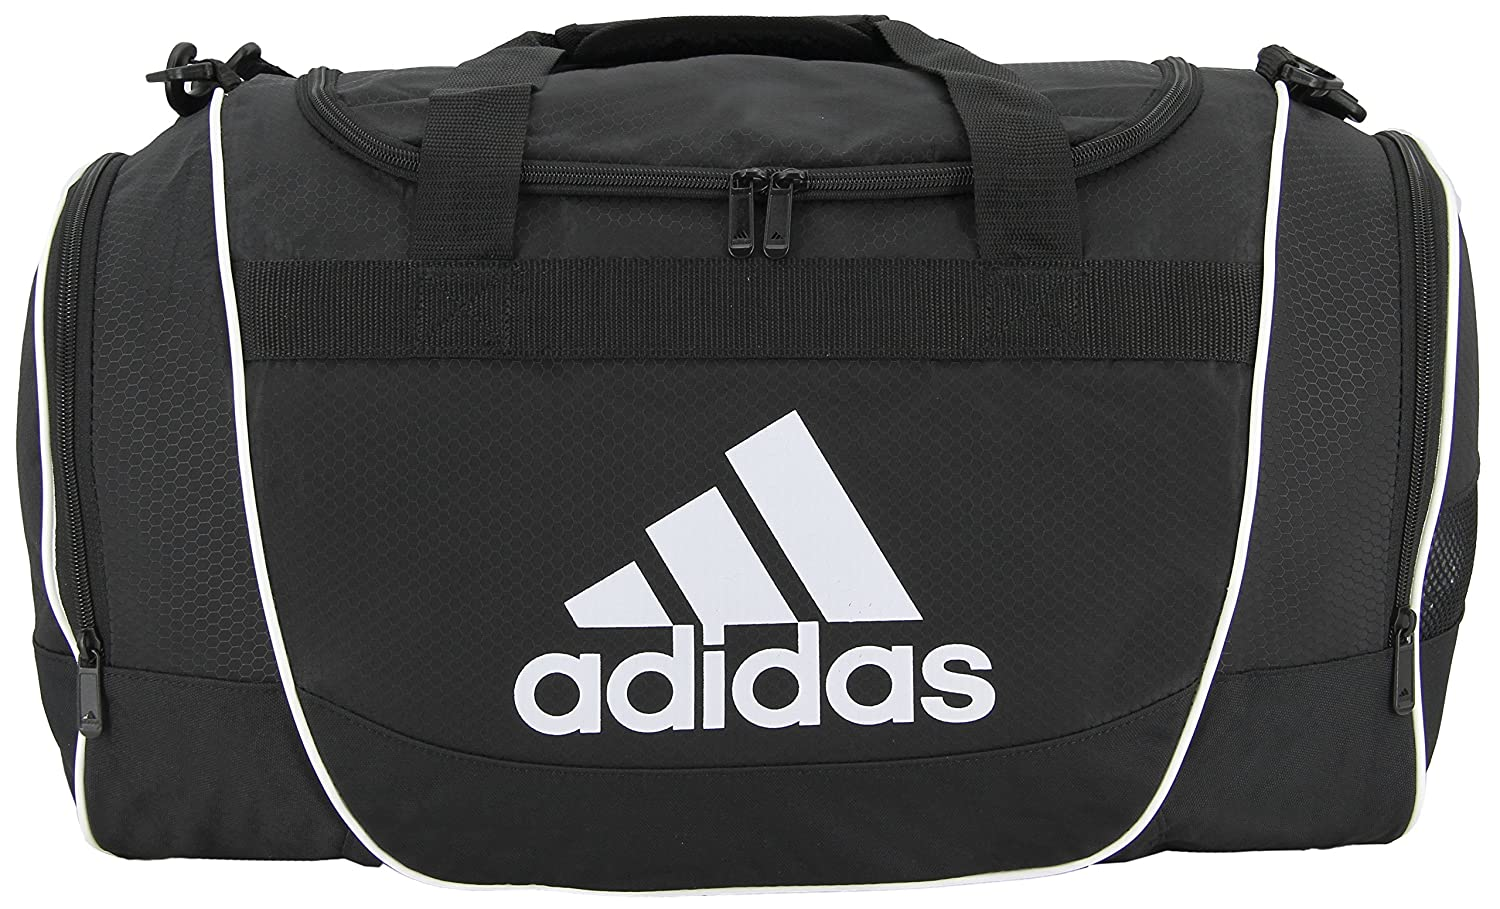 a74f10c410 Amazon.com  adidas Defender II Duffel Bag  Sports   Outdoors